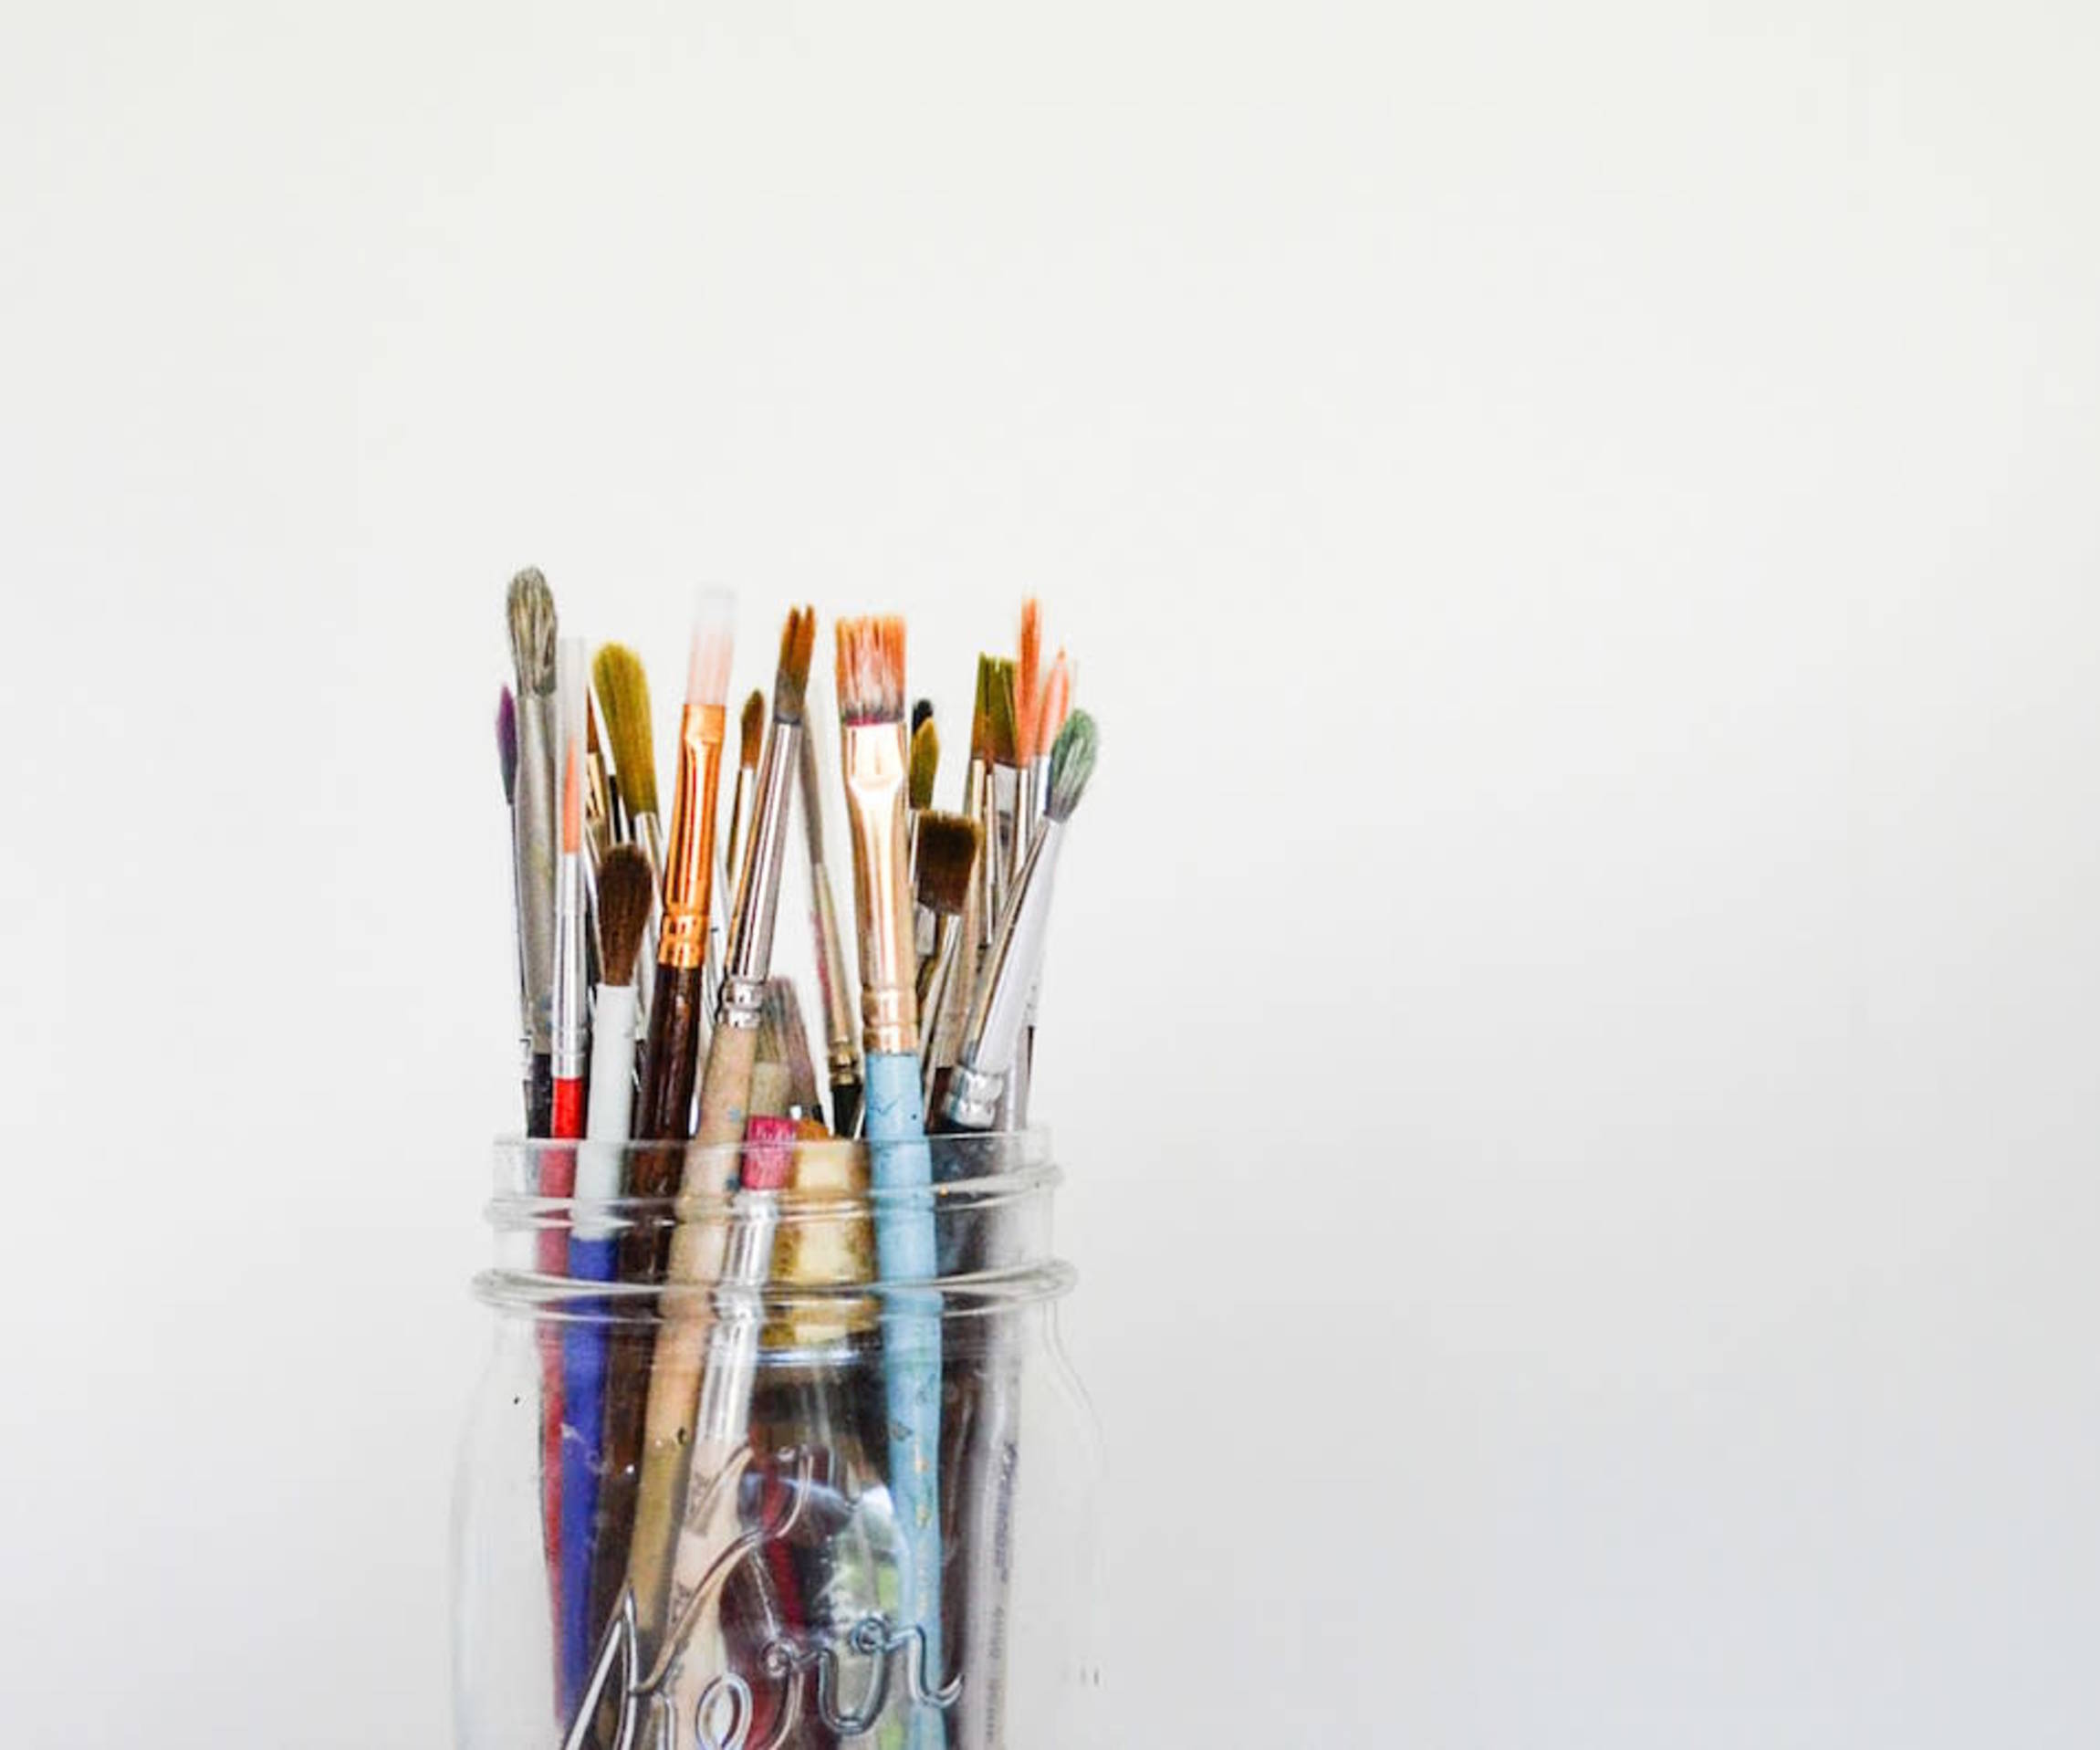 The Best Art Scholarships For 2019